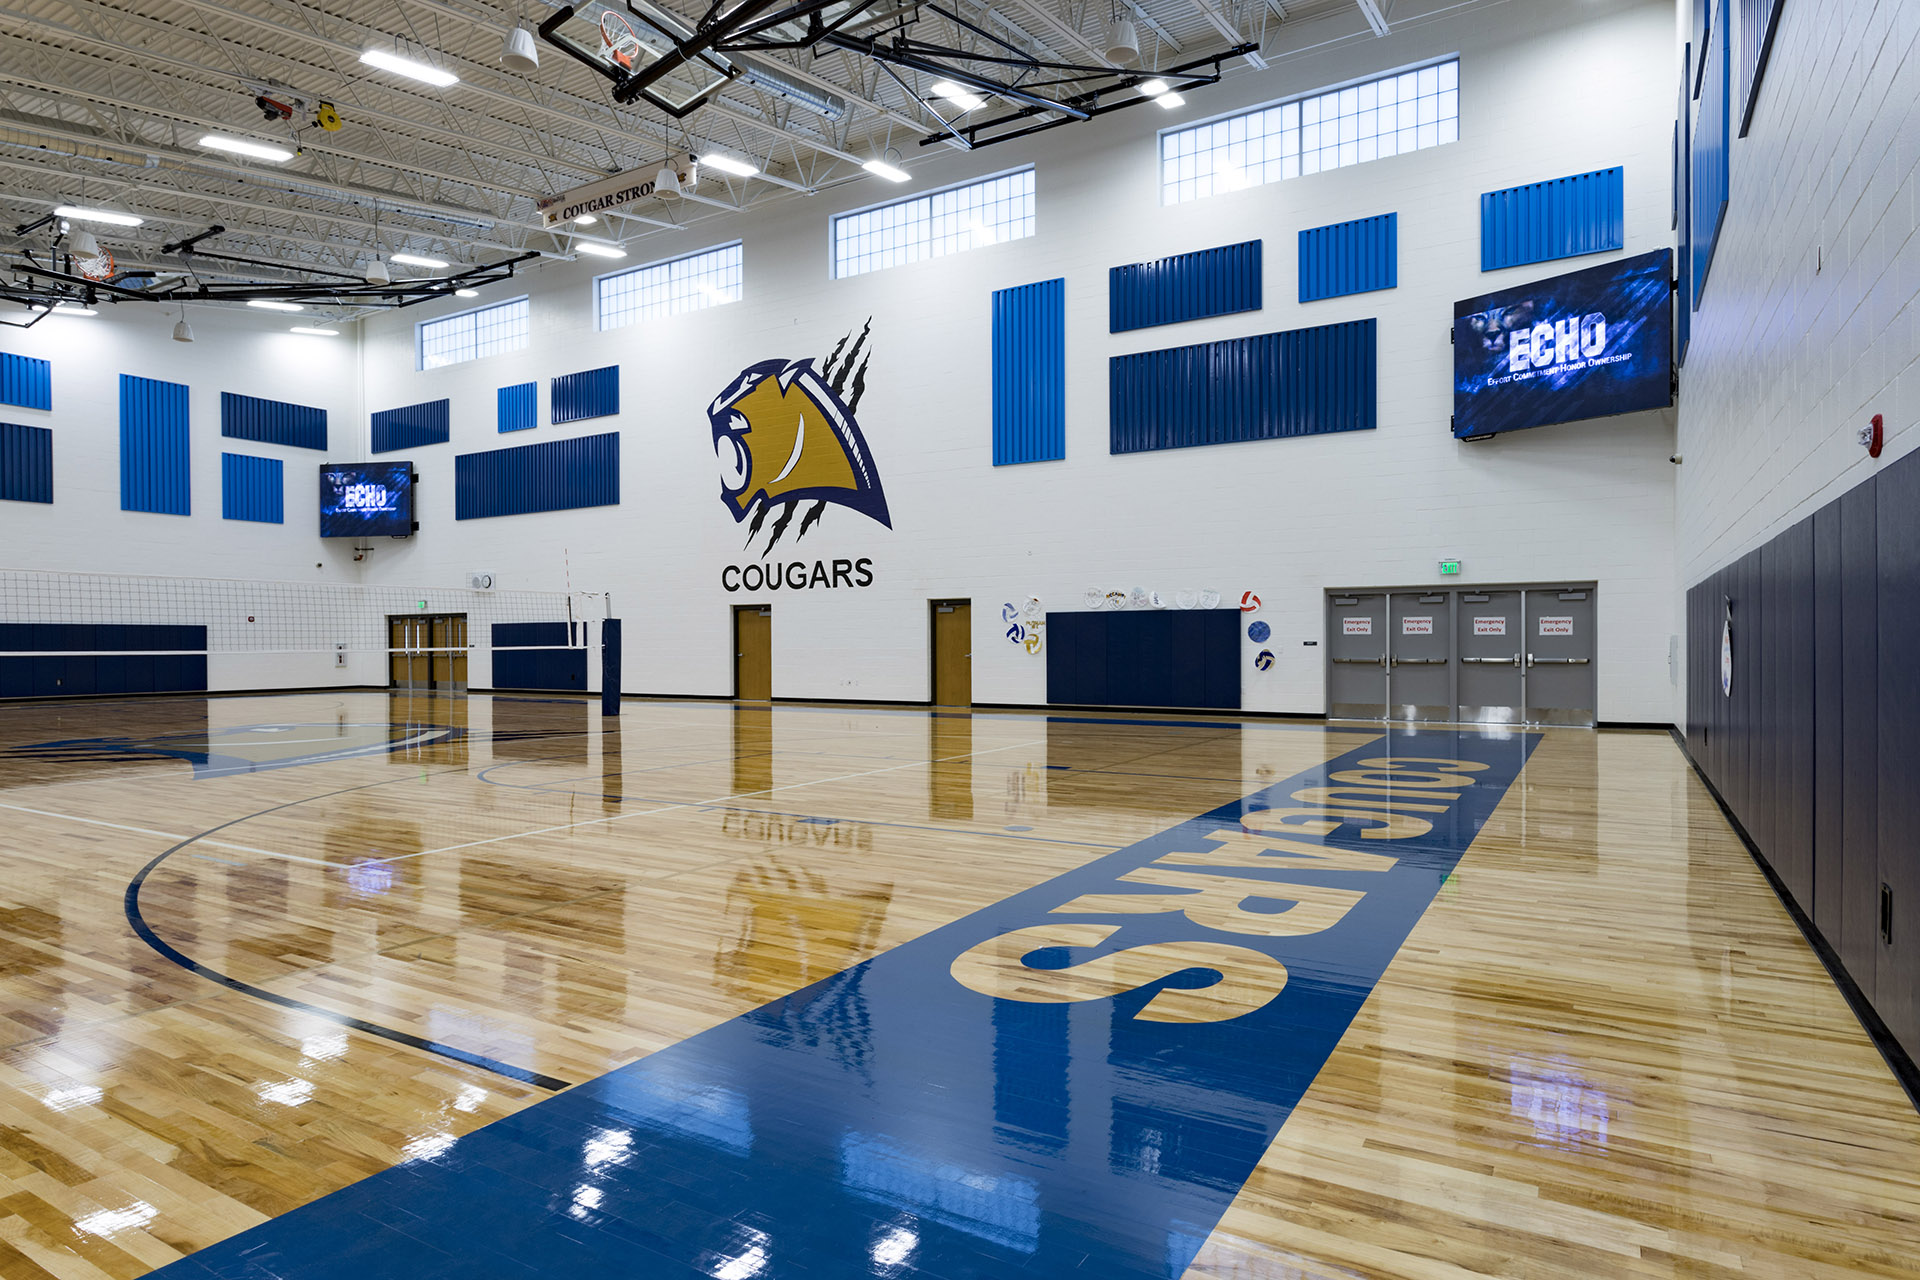 Echo K12 School Gym